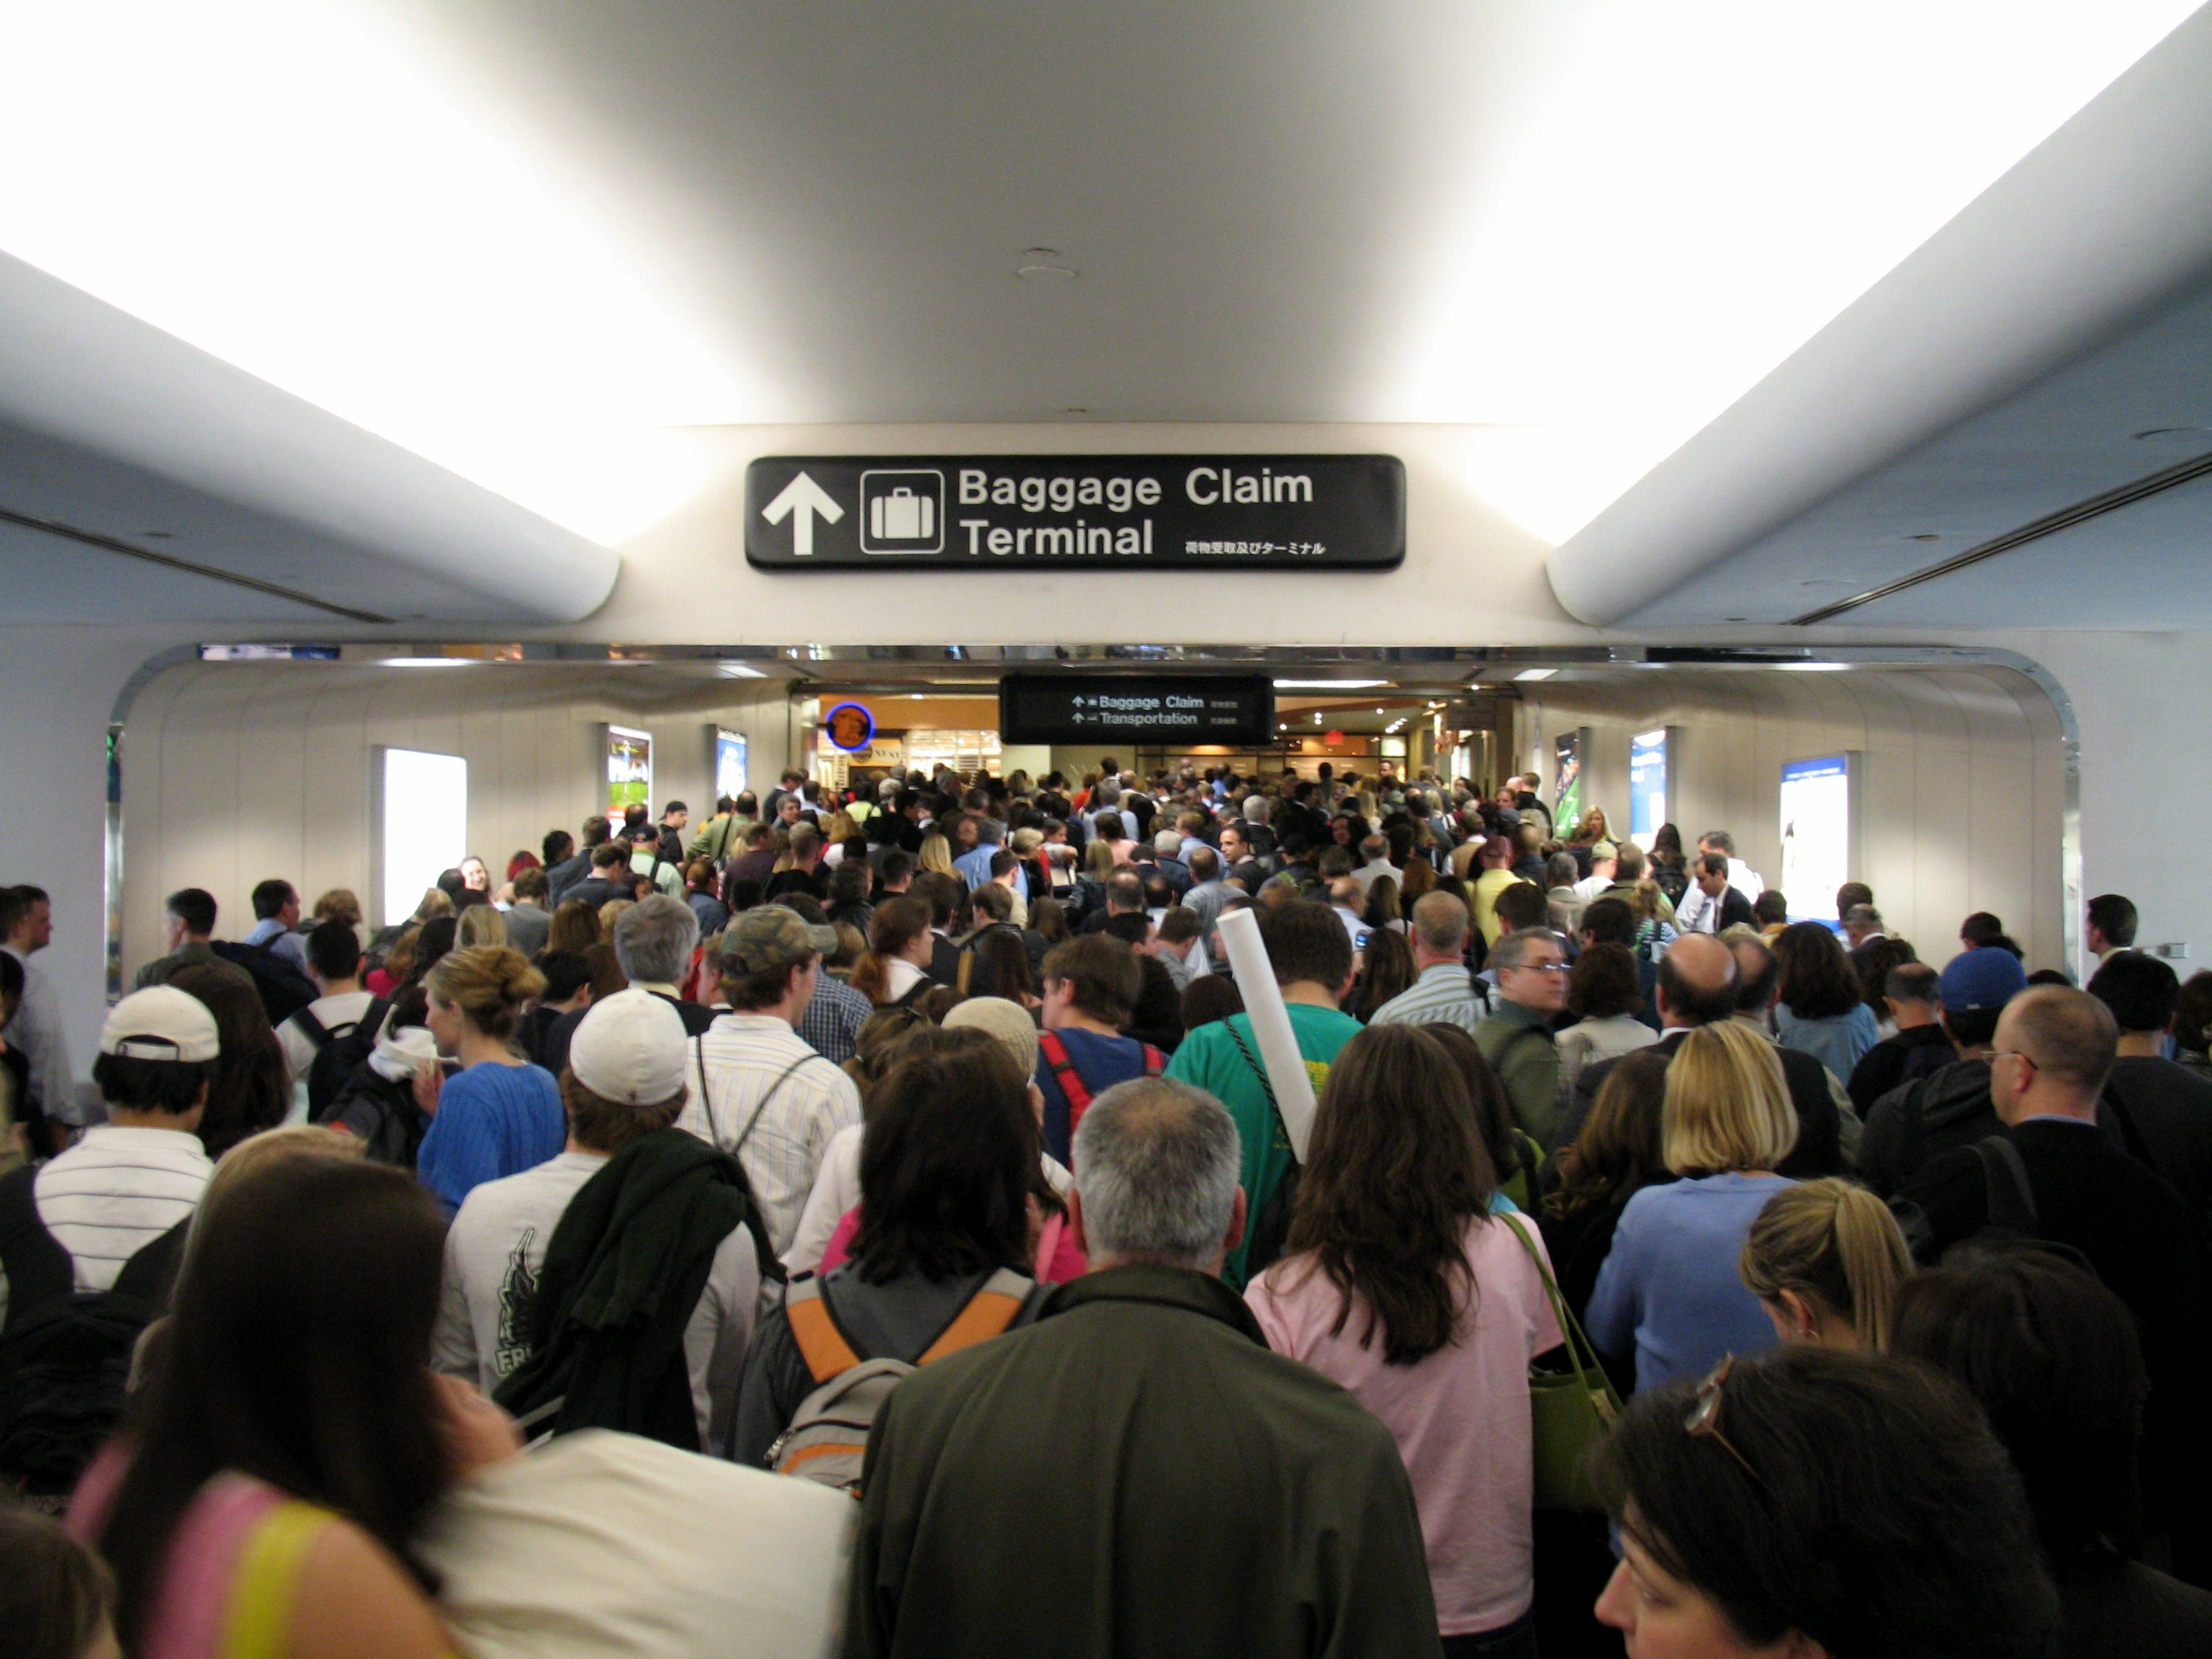 Crowd at airport